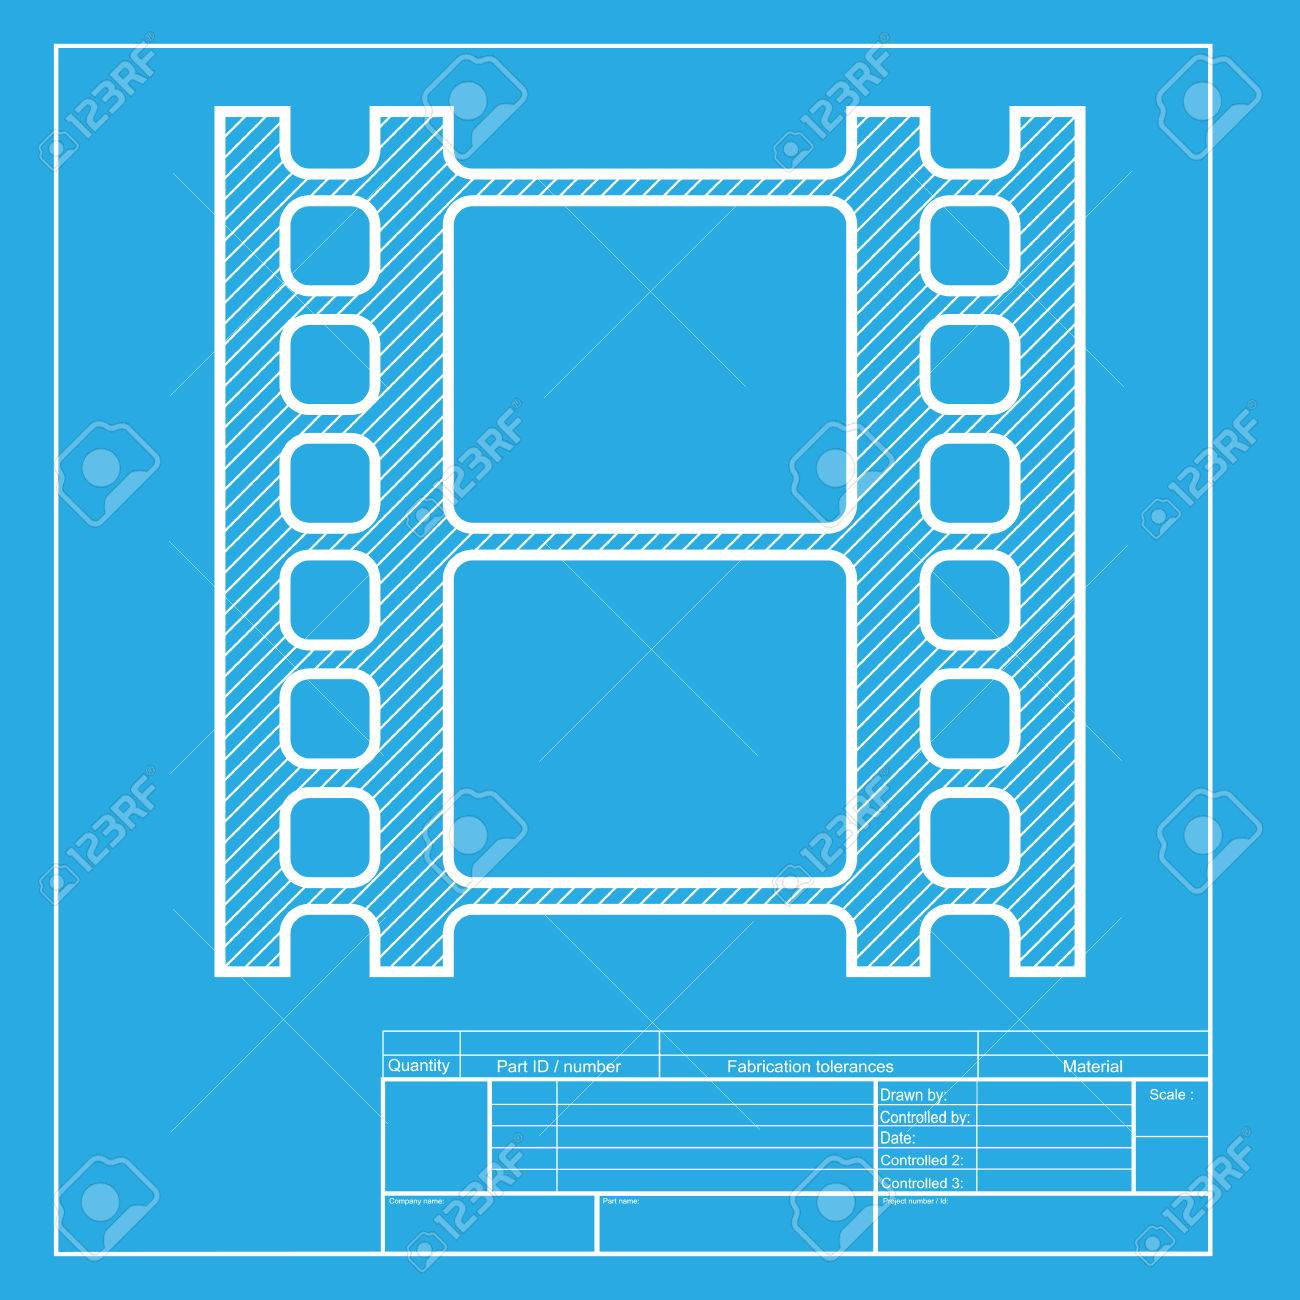 Reel of film sign white section of icon on blueprint template reel of film sign white section of icon on blueprint template stock vector malvernweather Image collections